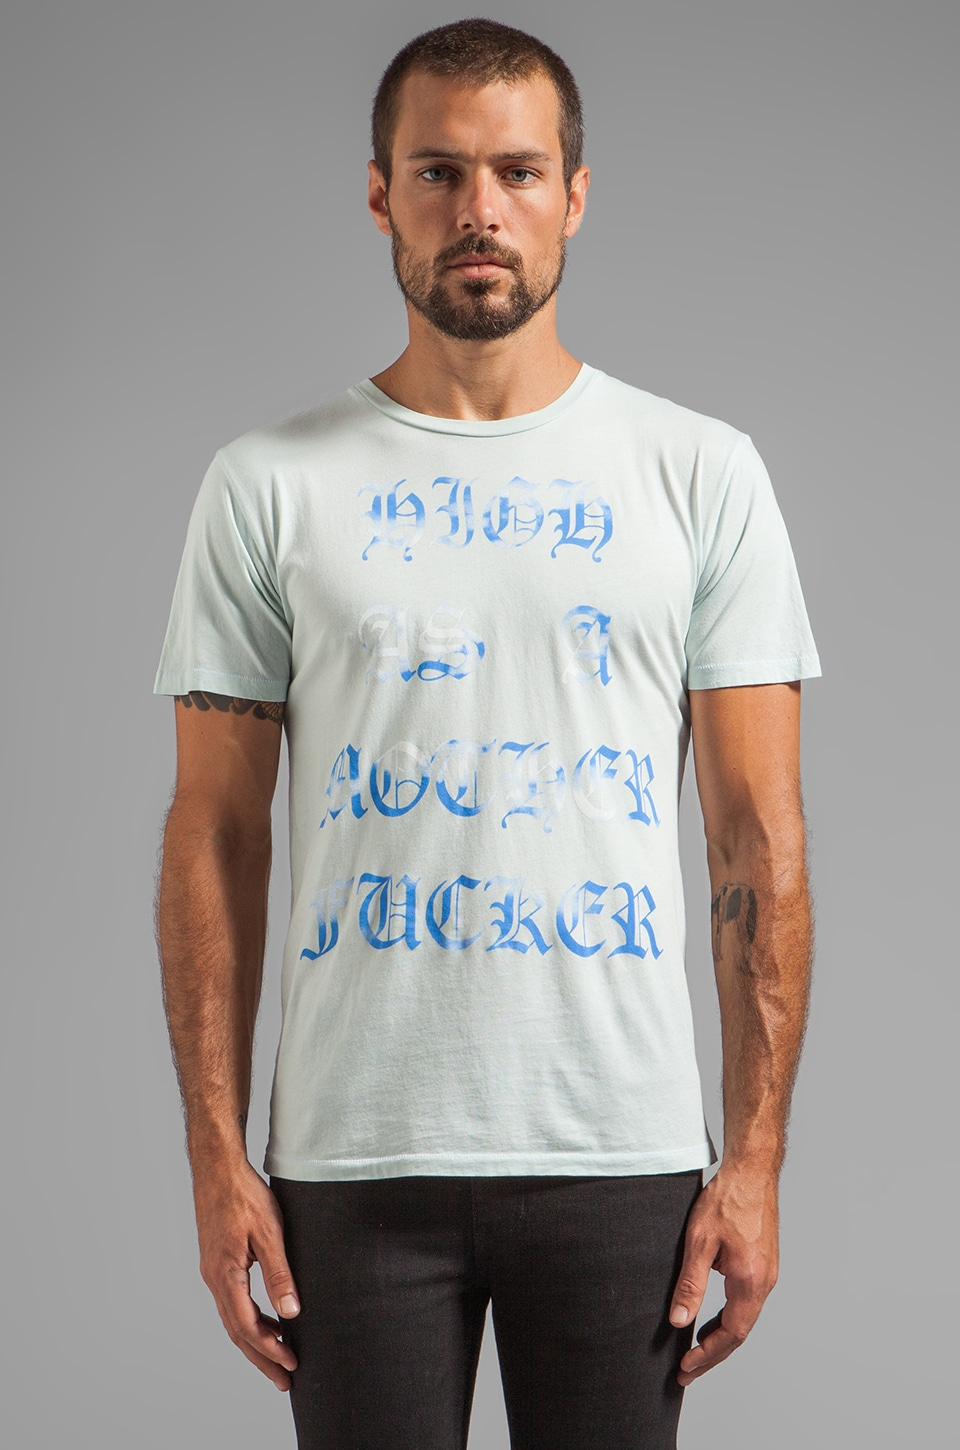 BLOOD IS THE NEW BLACK High As A Mother Tee in Pastel Blue